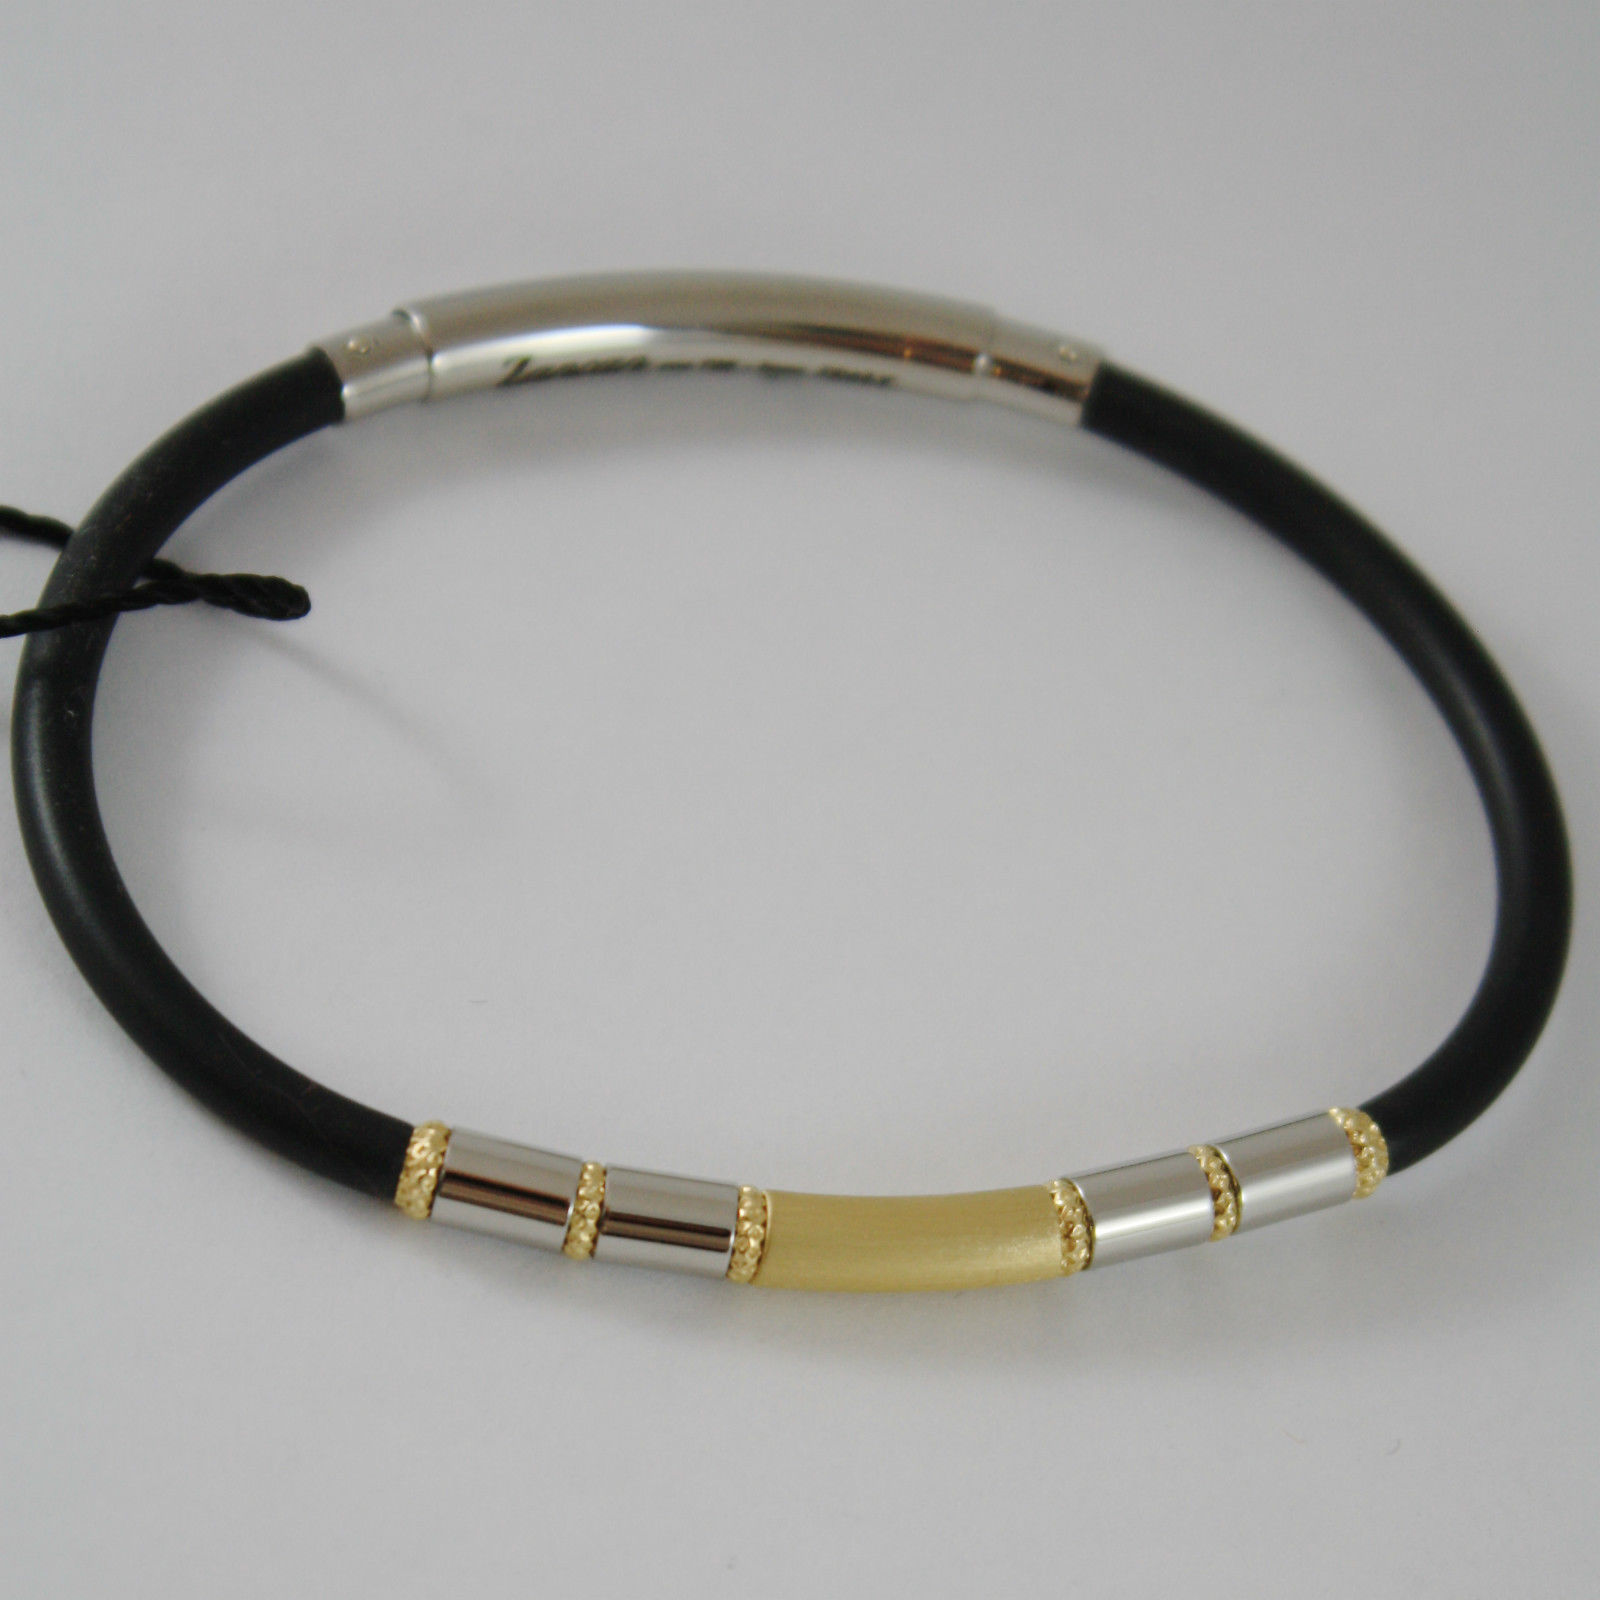 18K YELLOW GOLD, STEEL AND ROUND BLACK SILICON BRACELET BY ZANCAN MADE IN ITALY